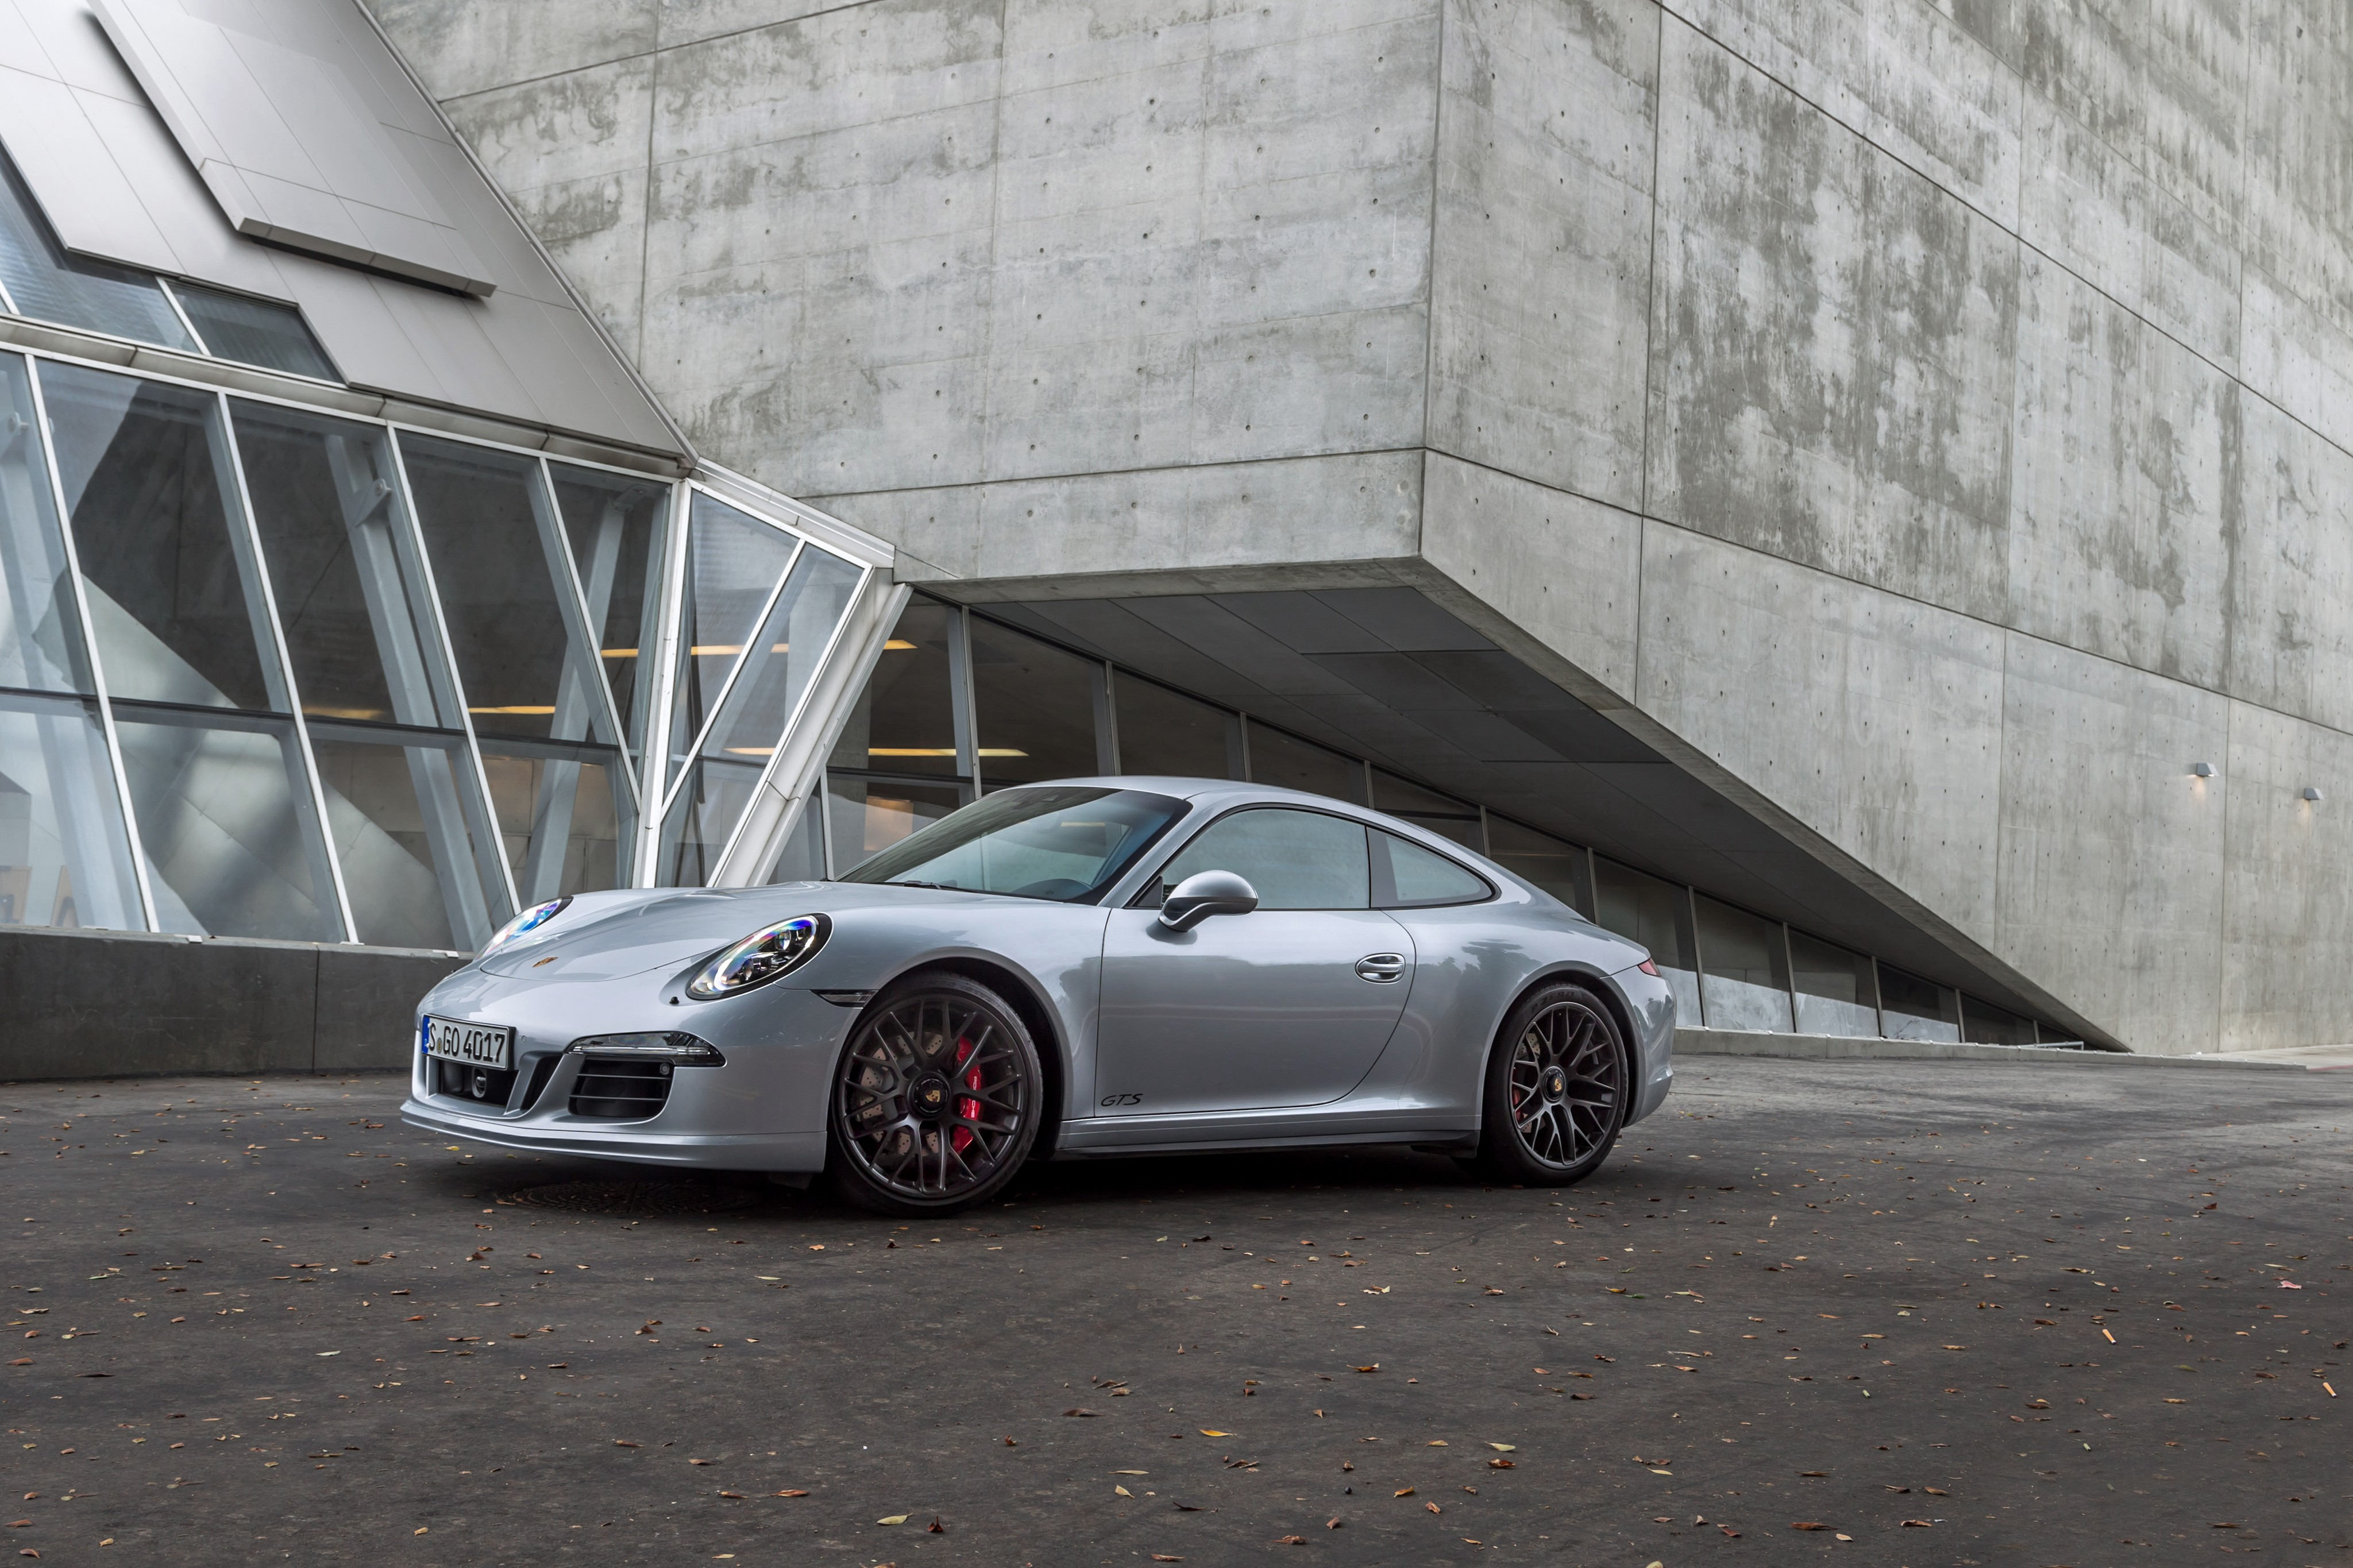 Hp Wallpaper Hd 1920x1080 Porsche 911 Carrera 4 Gts Specs Amp Photos 2014 2015